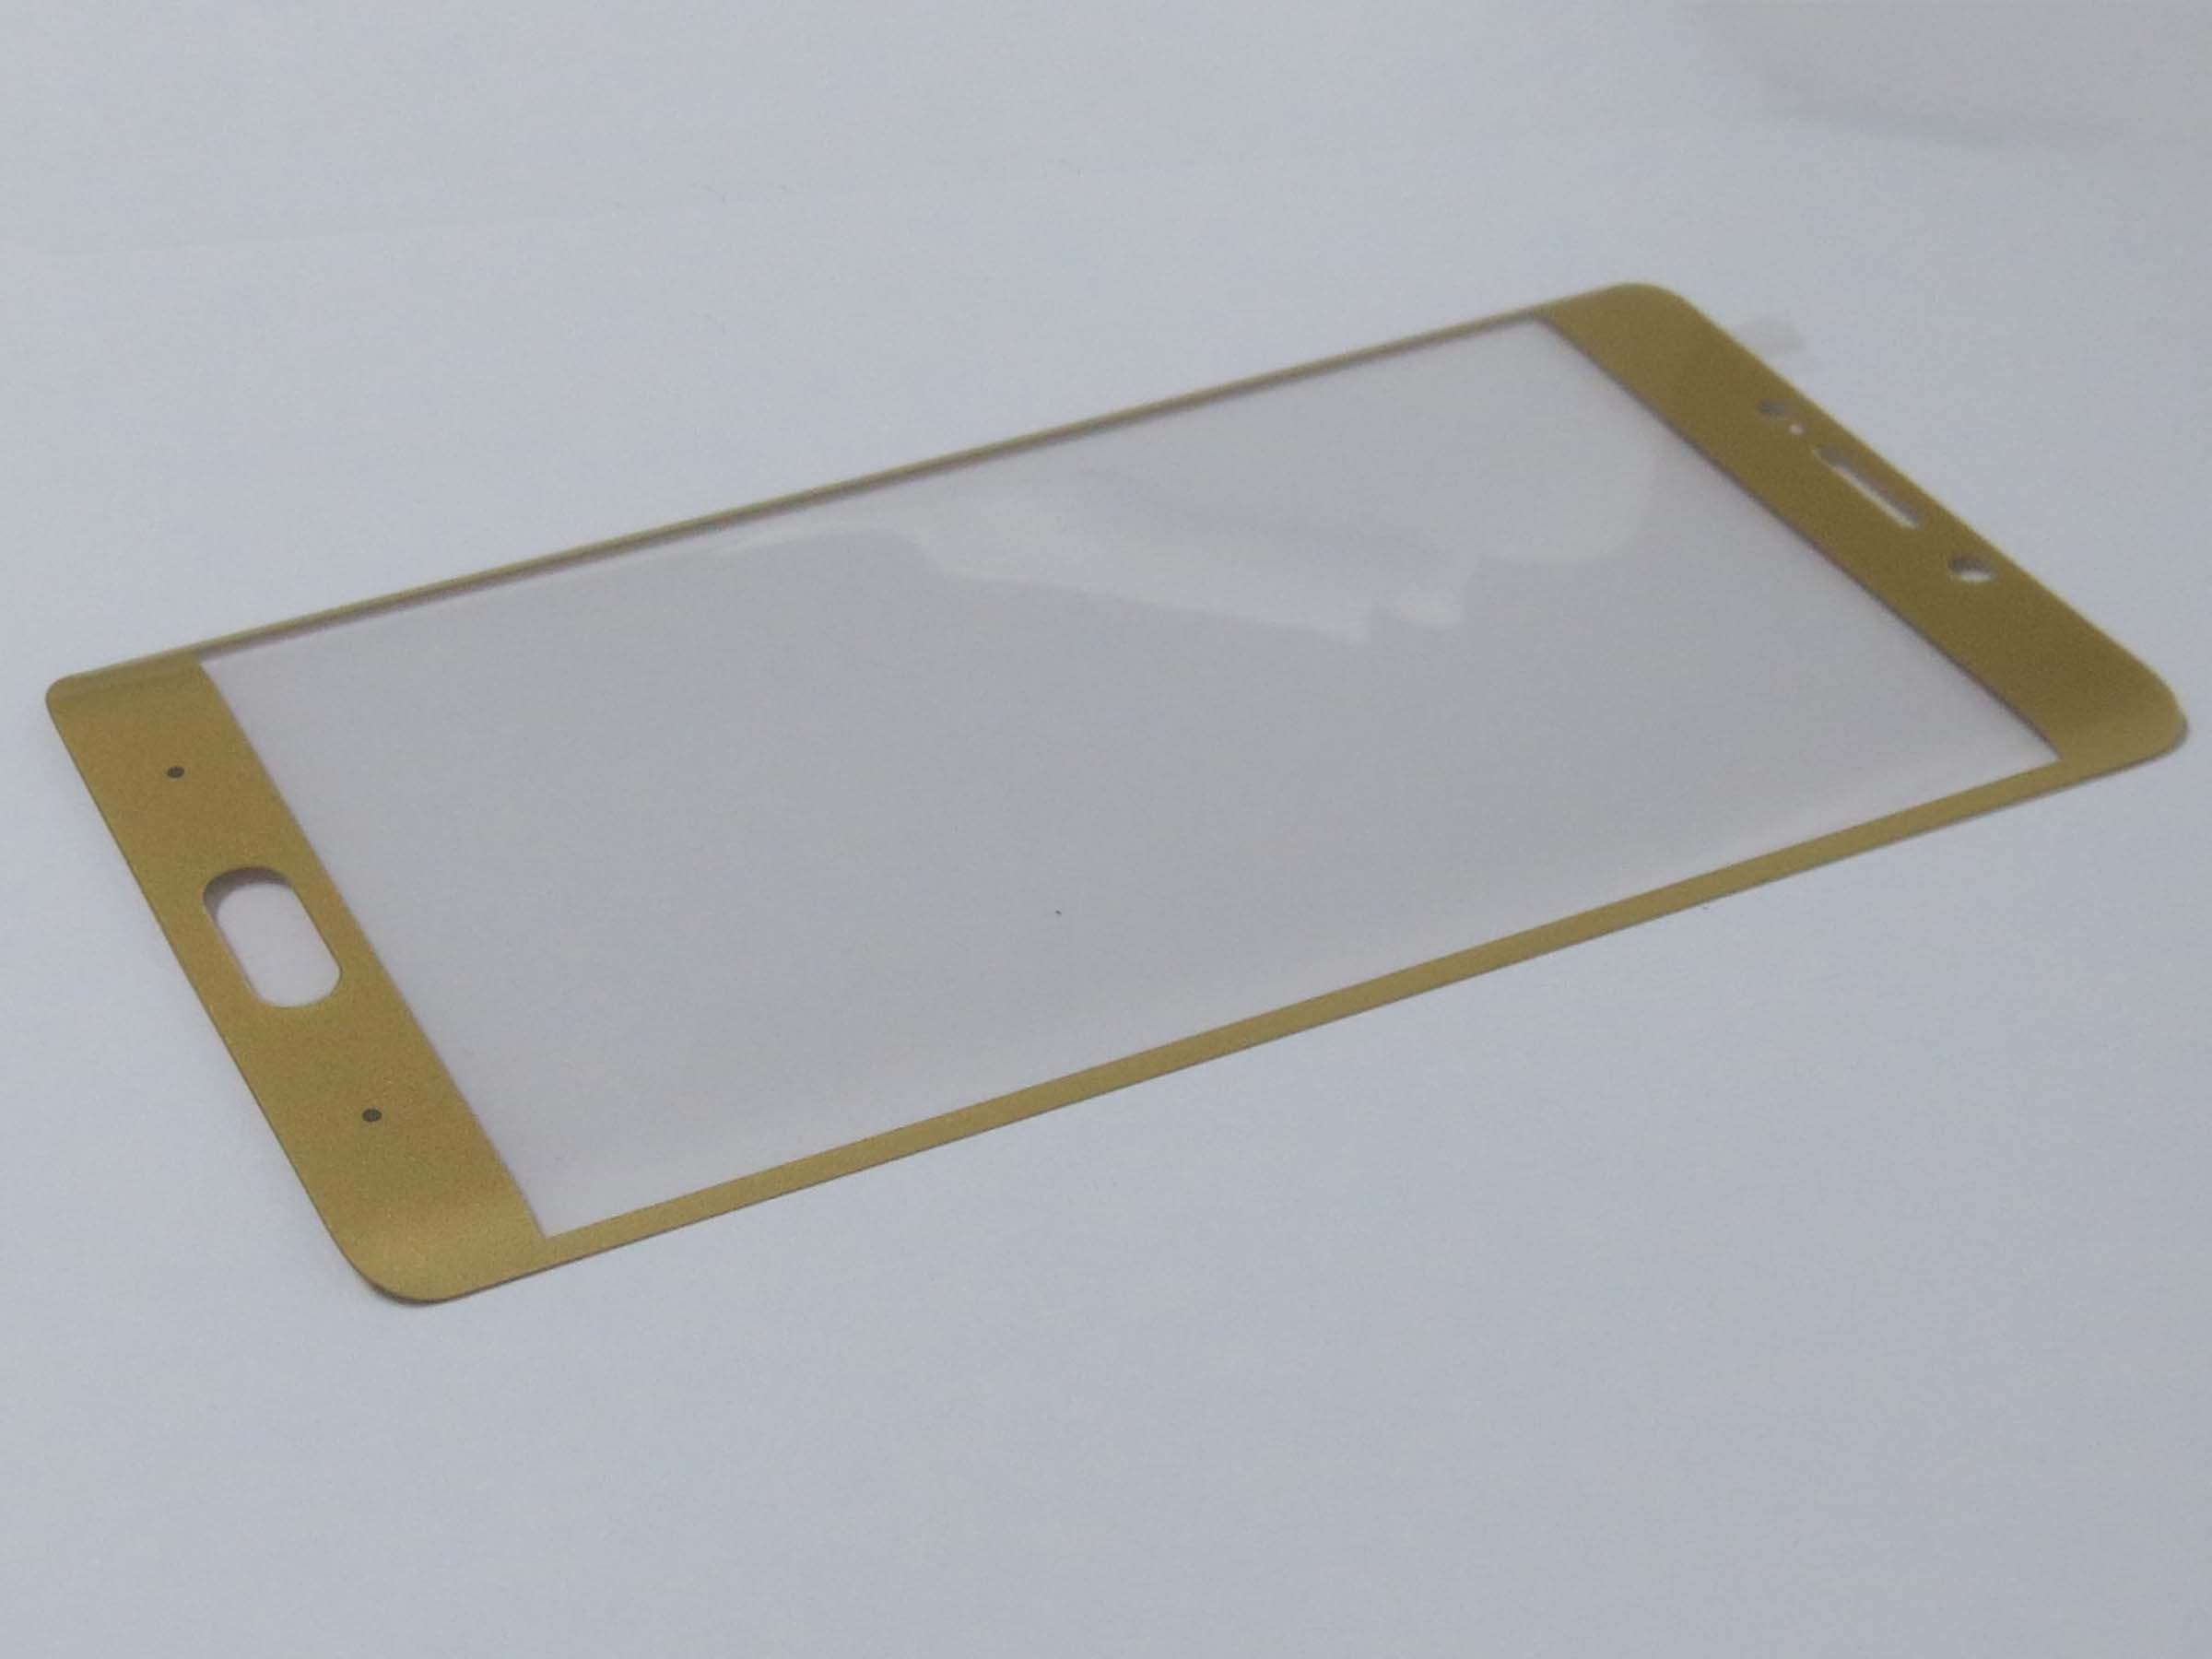 Full Coverage 3D Curved Screen Protector for xiaomi note2-Gold&Black&White&Transparent